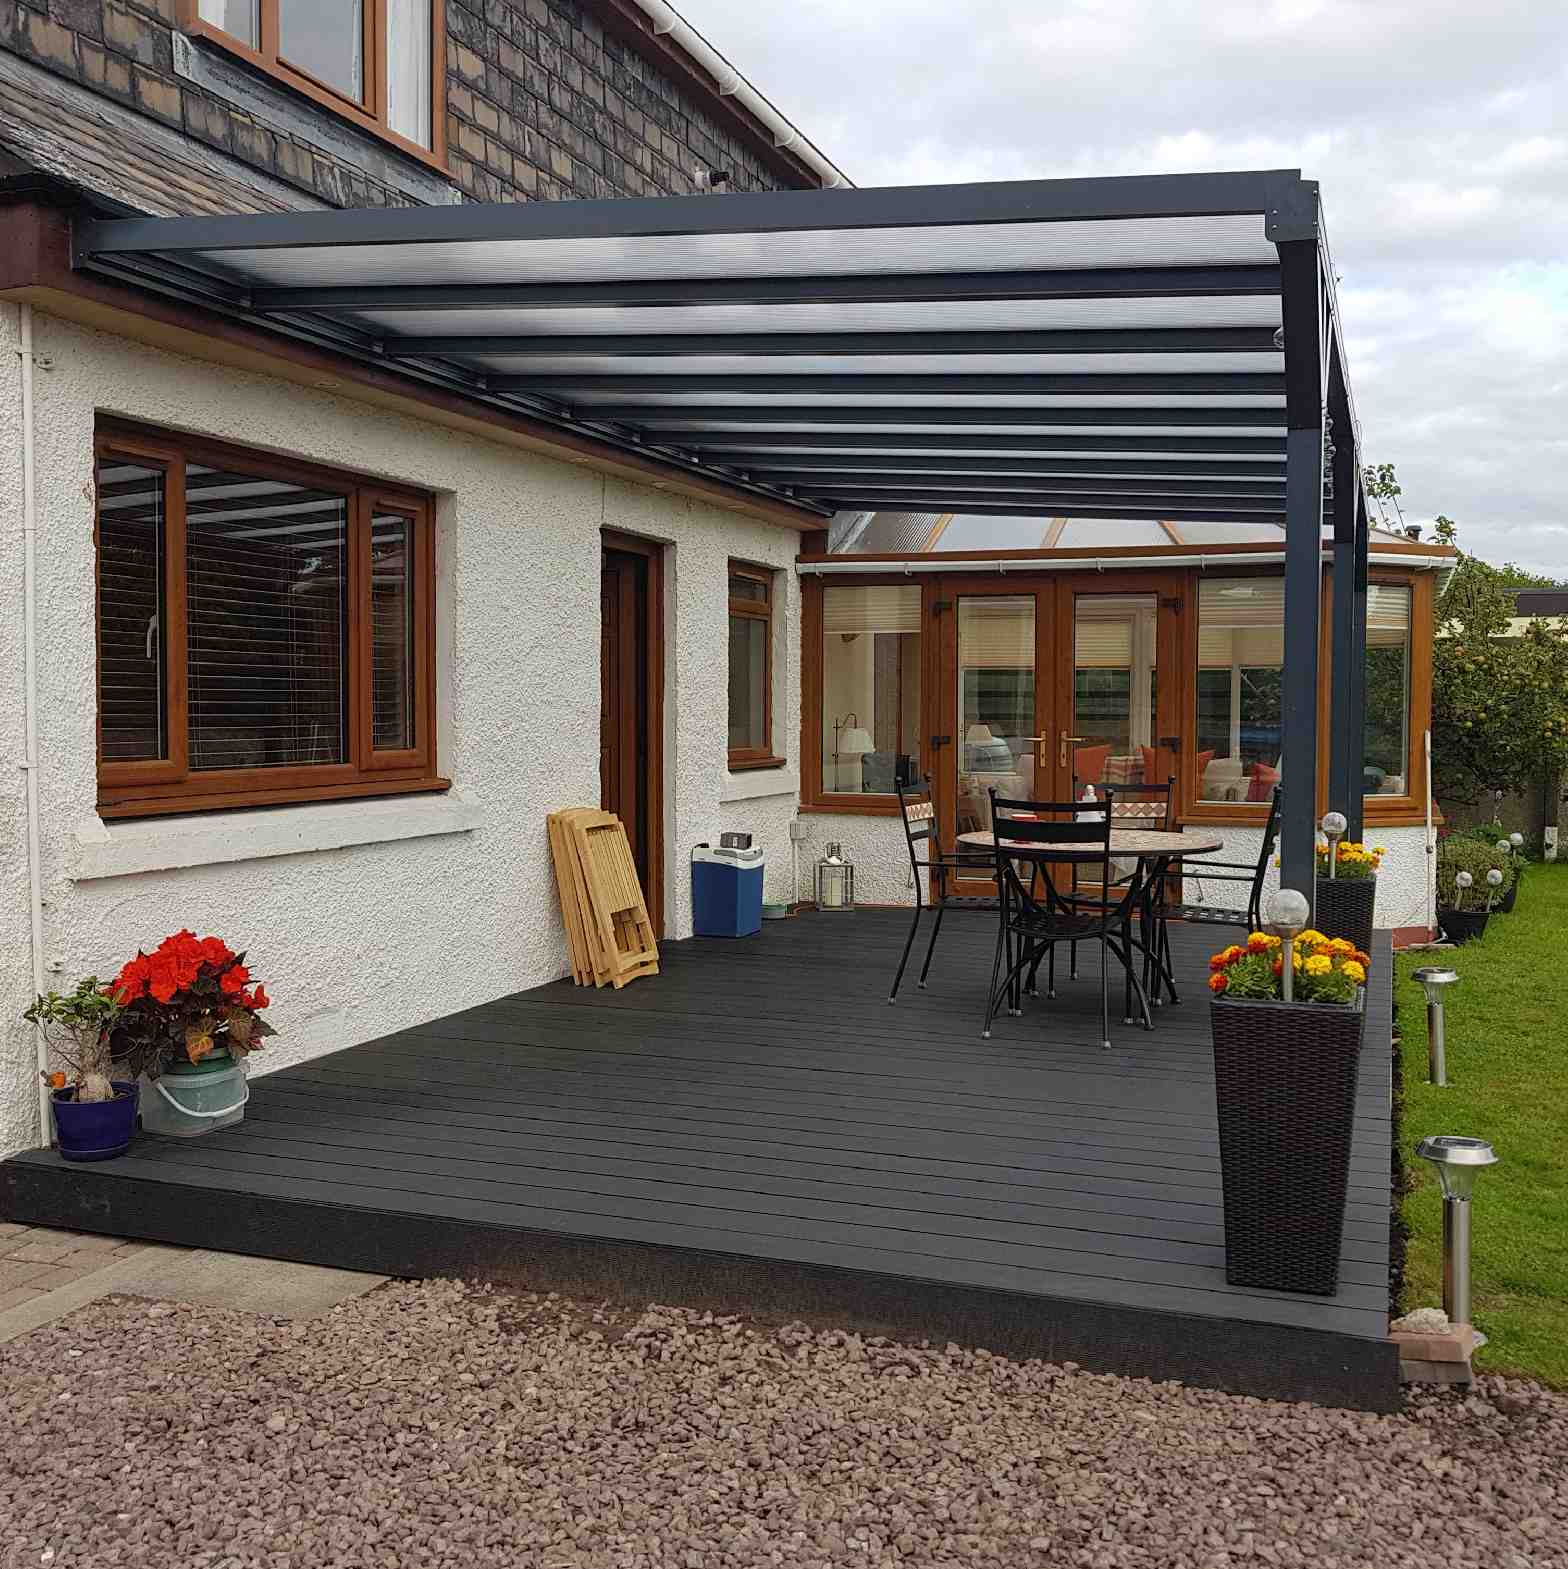 Buy Omega Verandah, Anthracite Grey, 16mm Polycarbonate Glazing - 8.4m (W) x 2.0m (P), (4) Supporting Posts online today